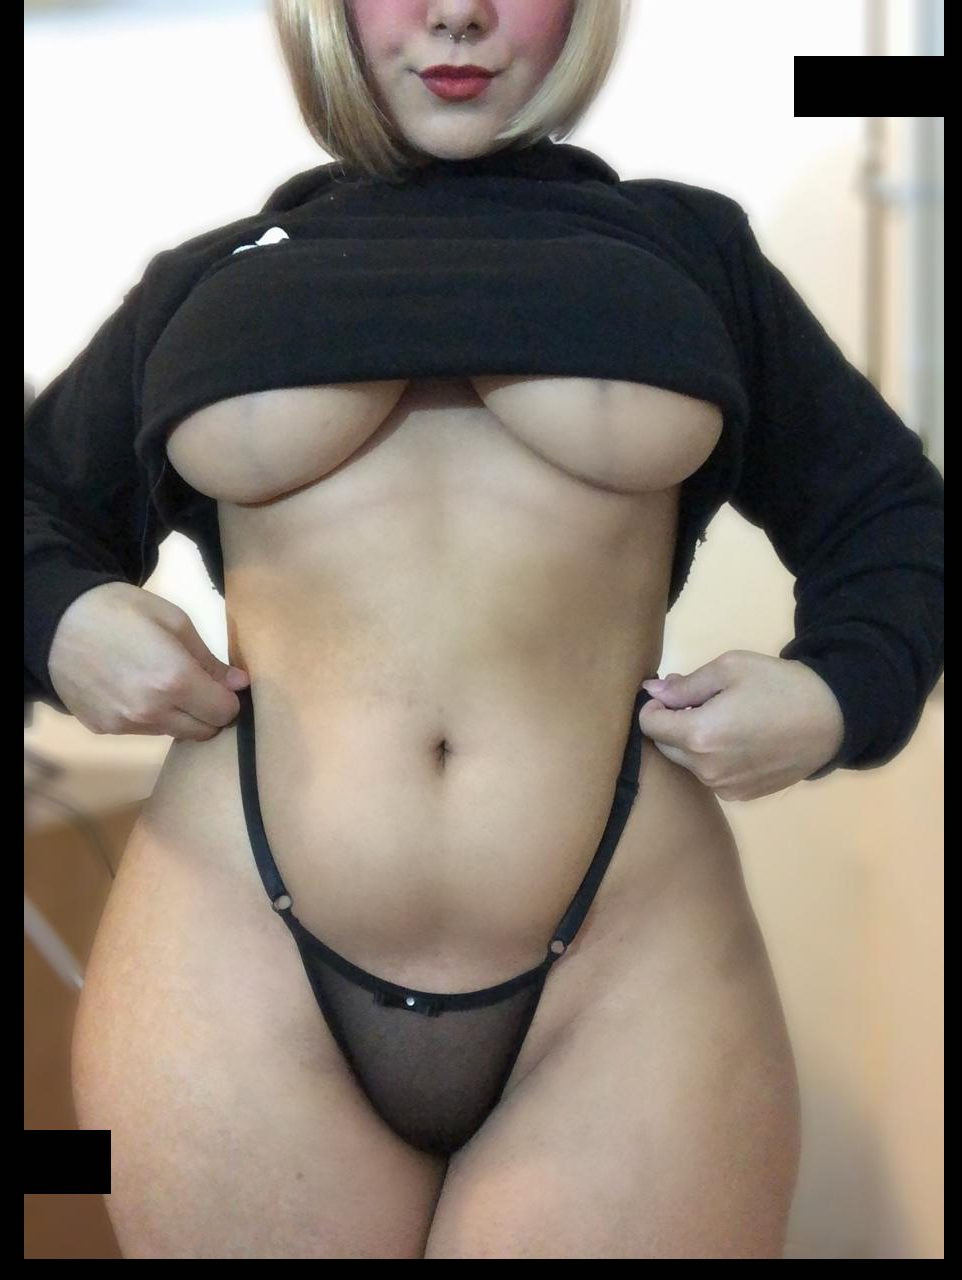 Victoria Matosa onlyfans nudes leaks thefappening.nu 3